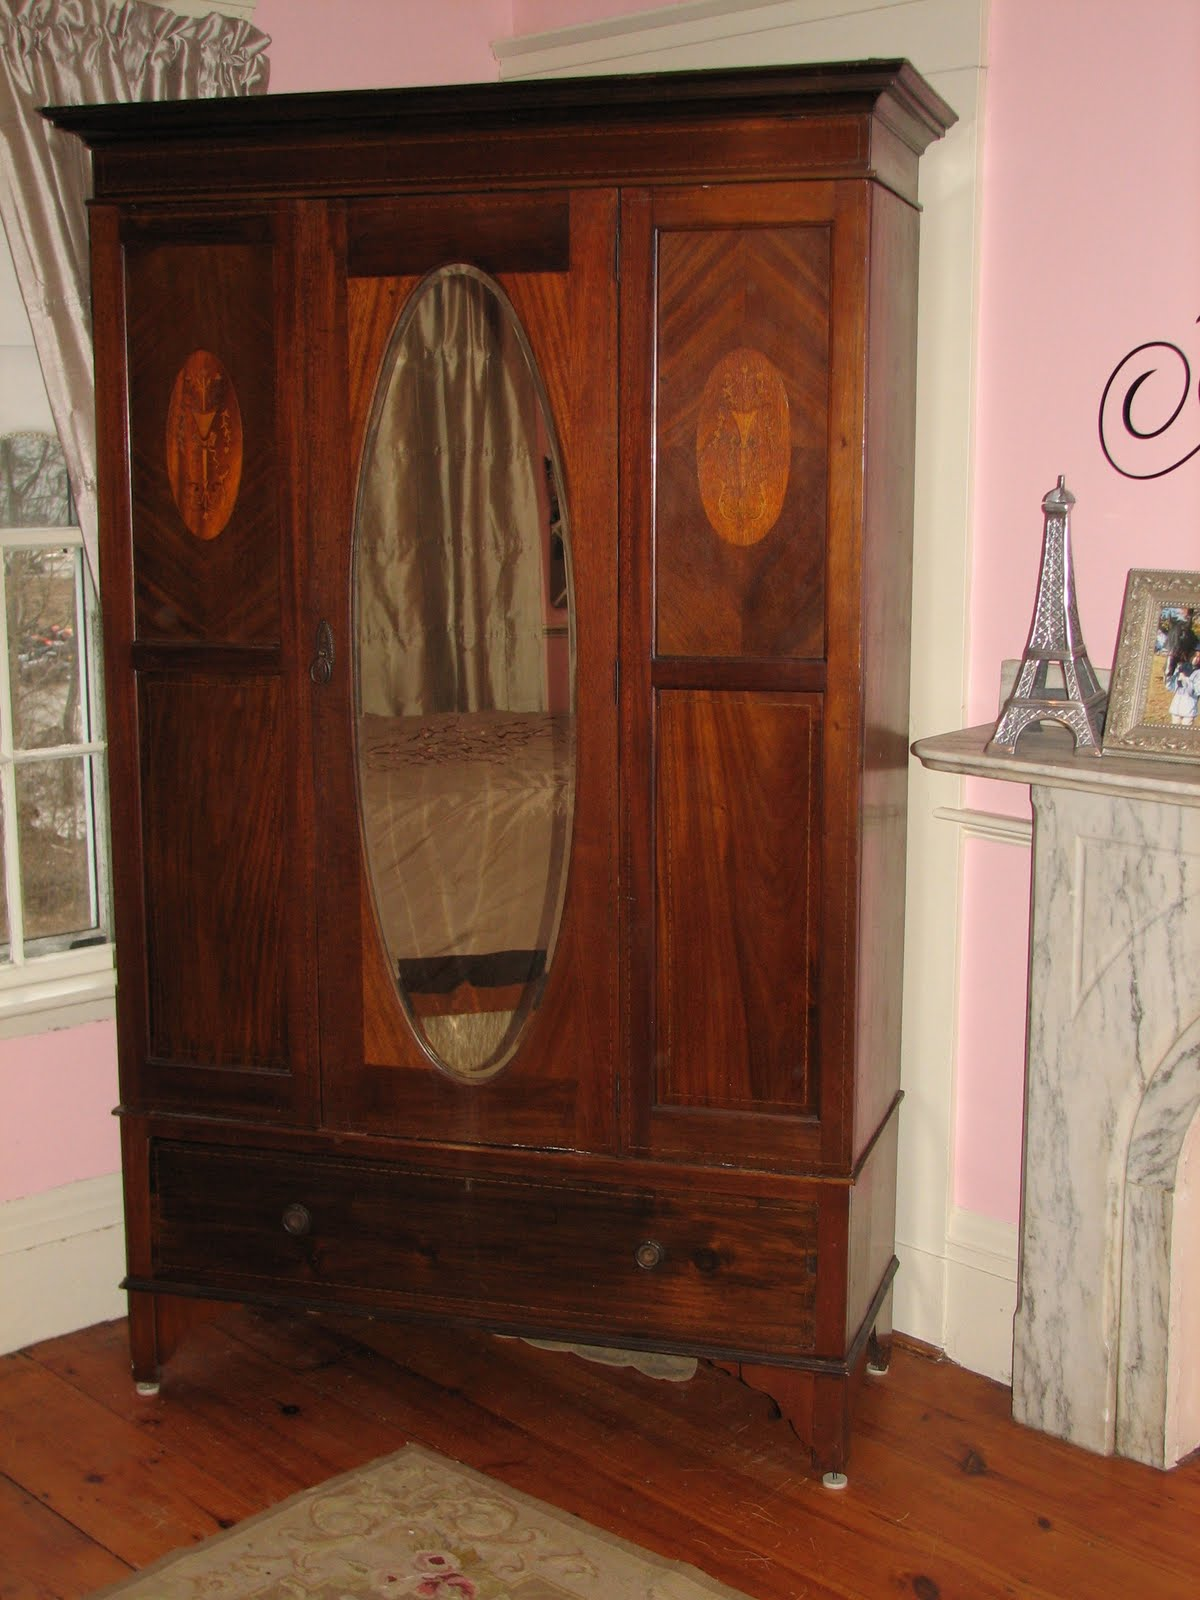 antique armoire with mirror Church Street Sale: Antique Wardrobe Armoire w/ Mirror $500 antique armoire with mirror